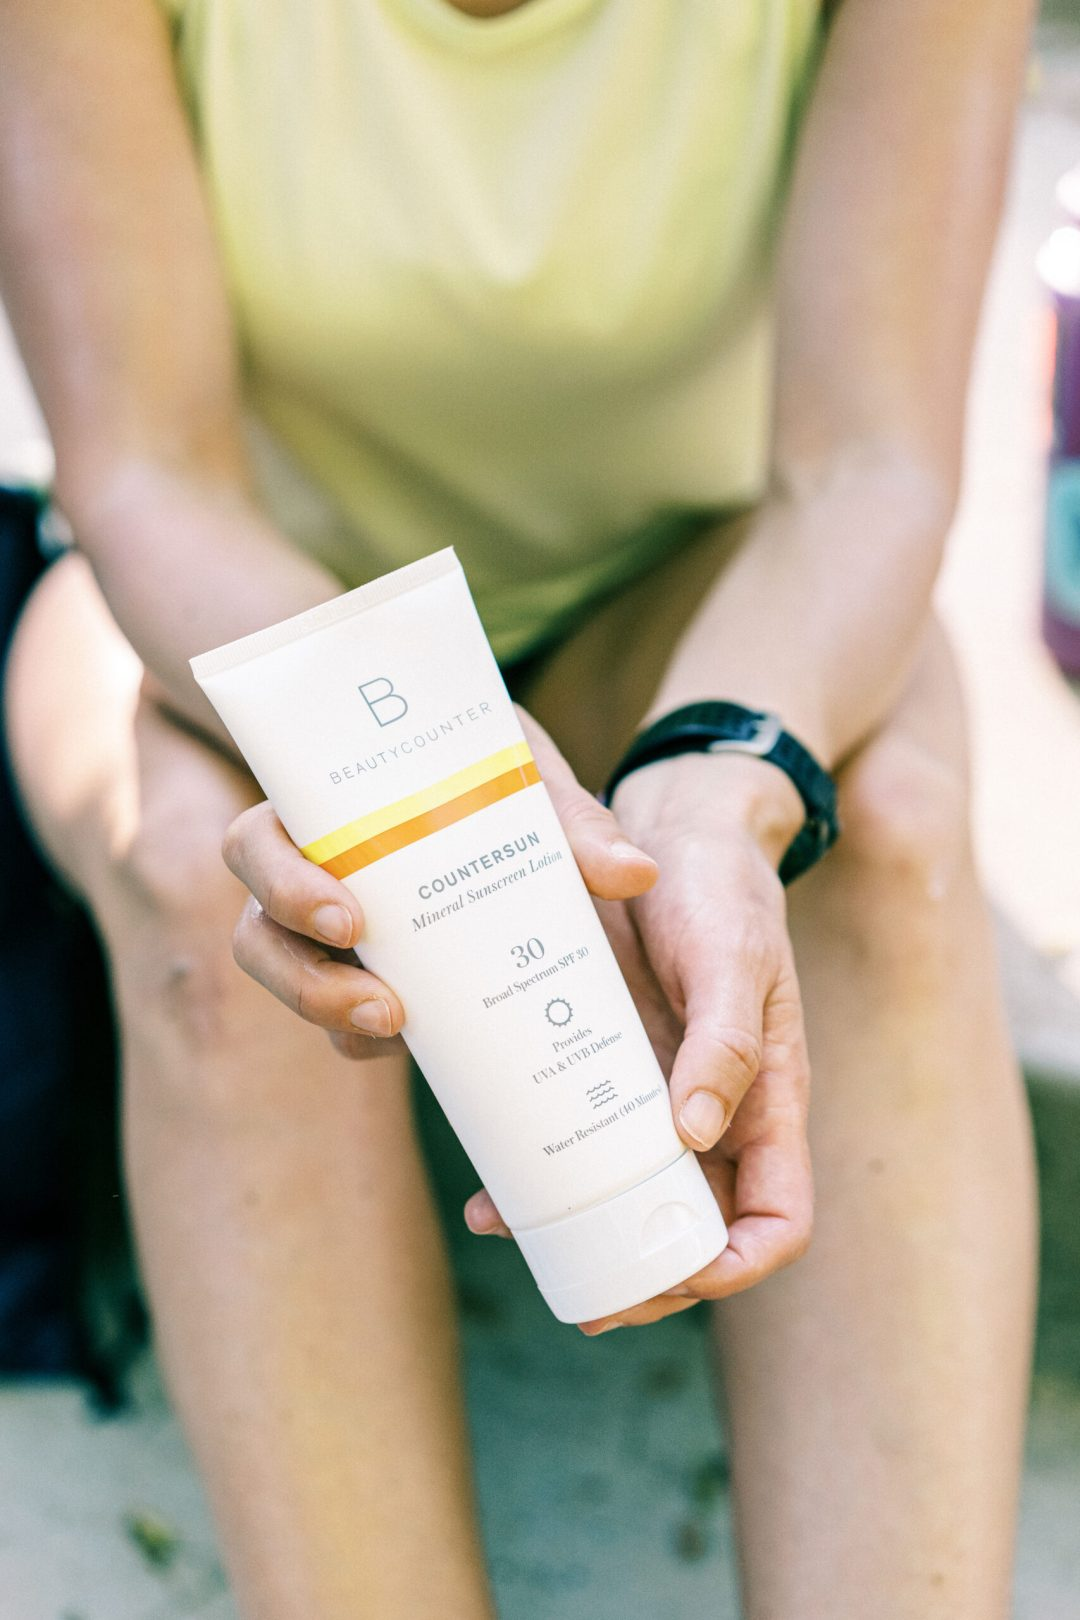 Countersun Lotion review